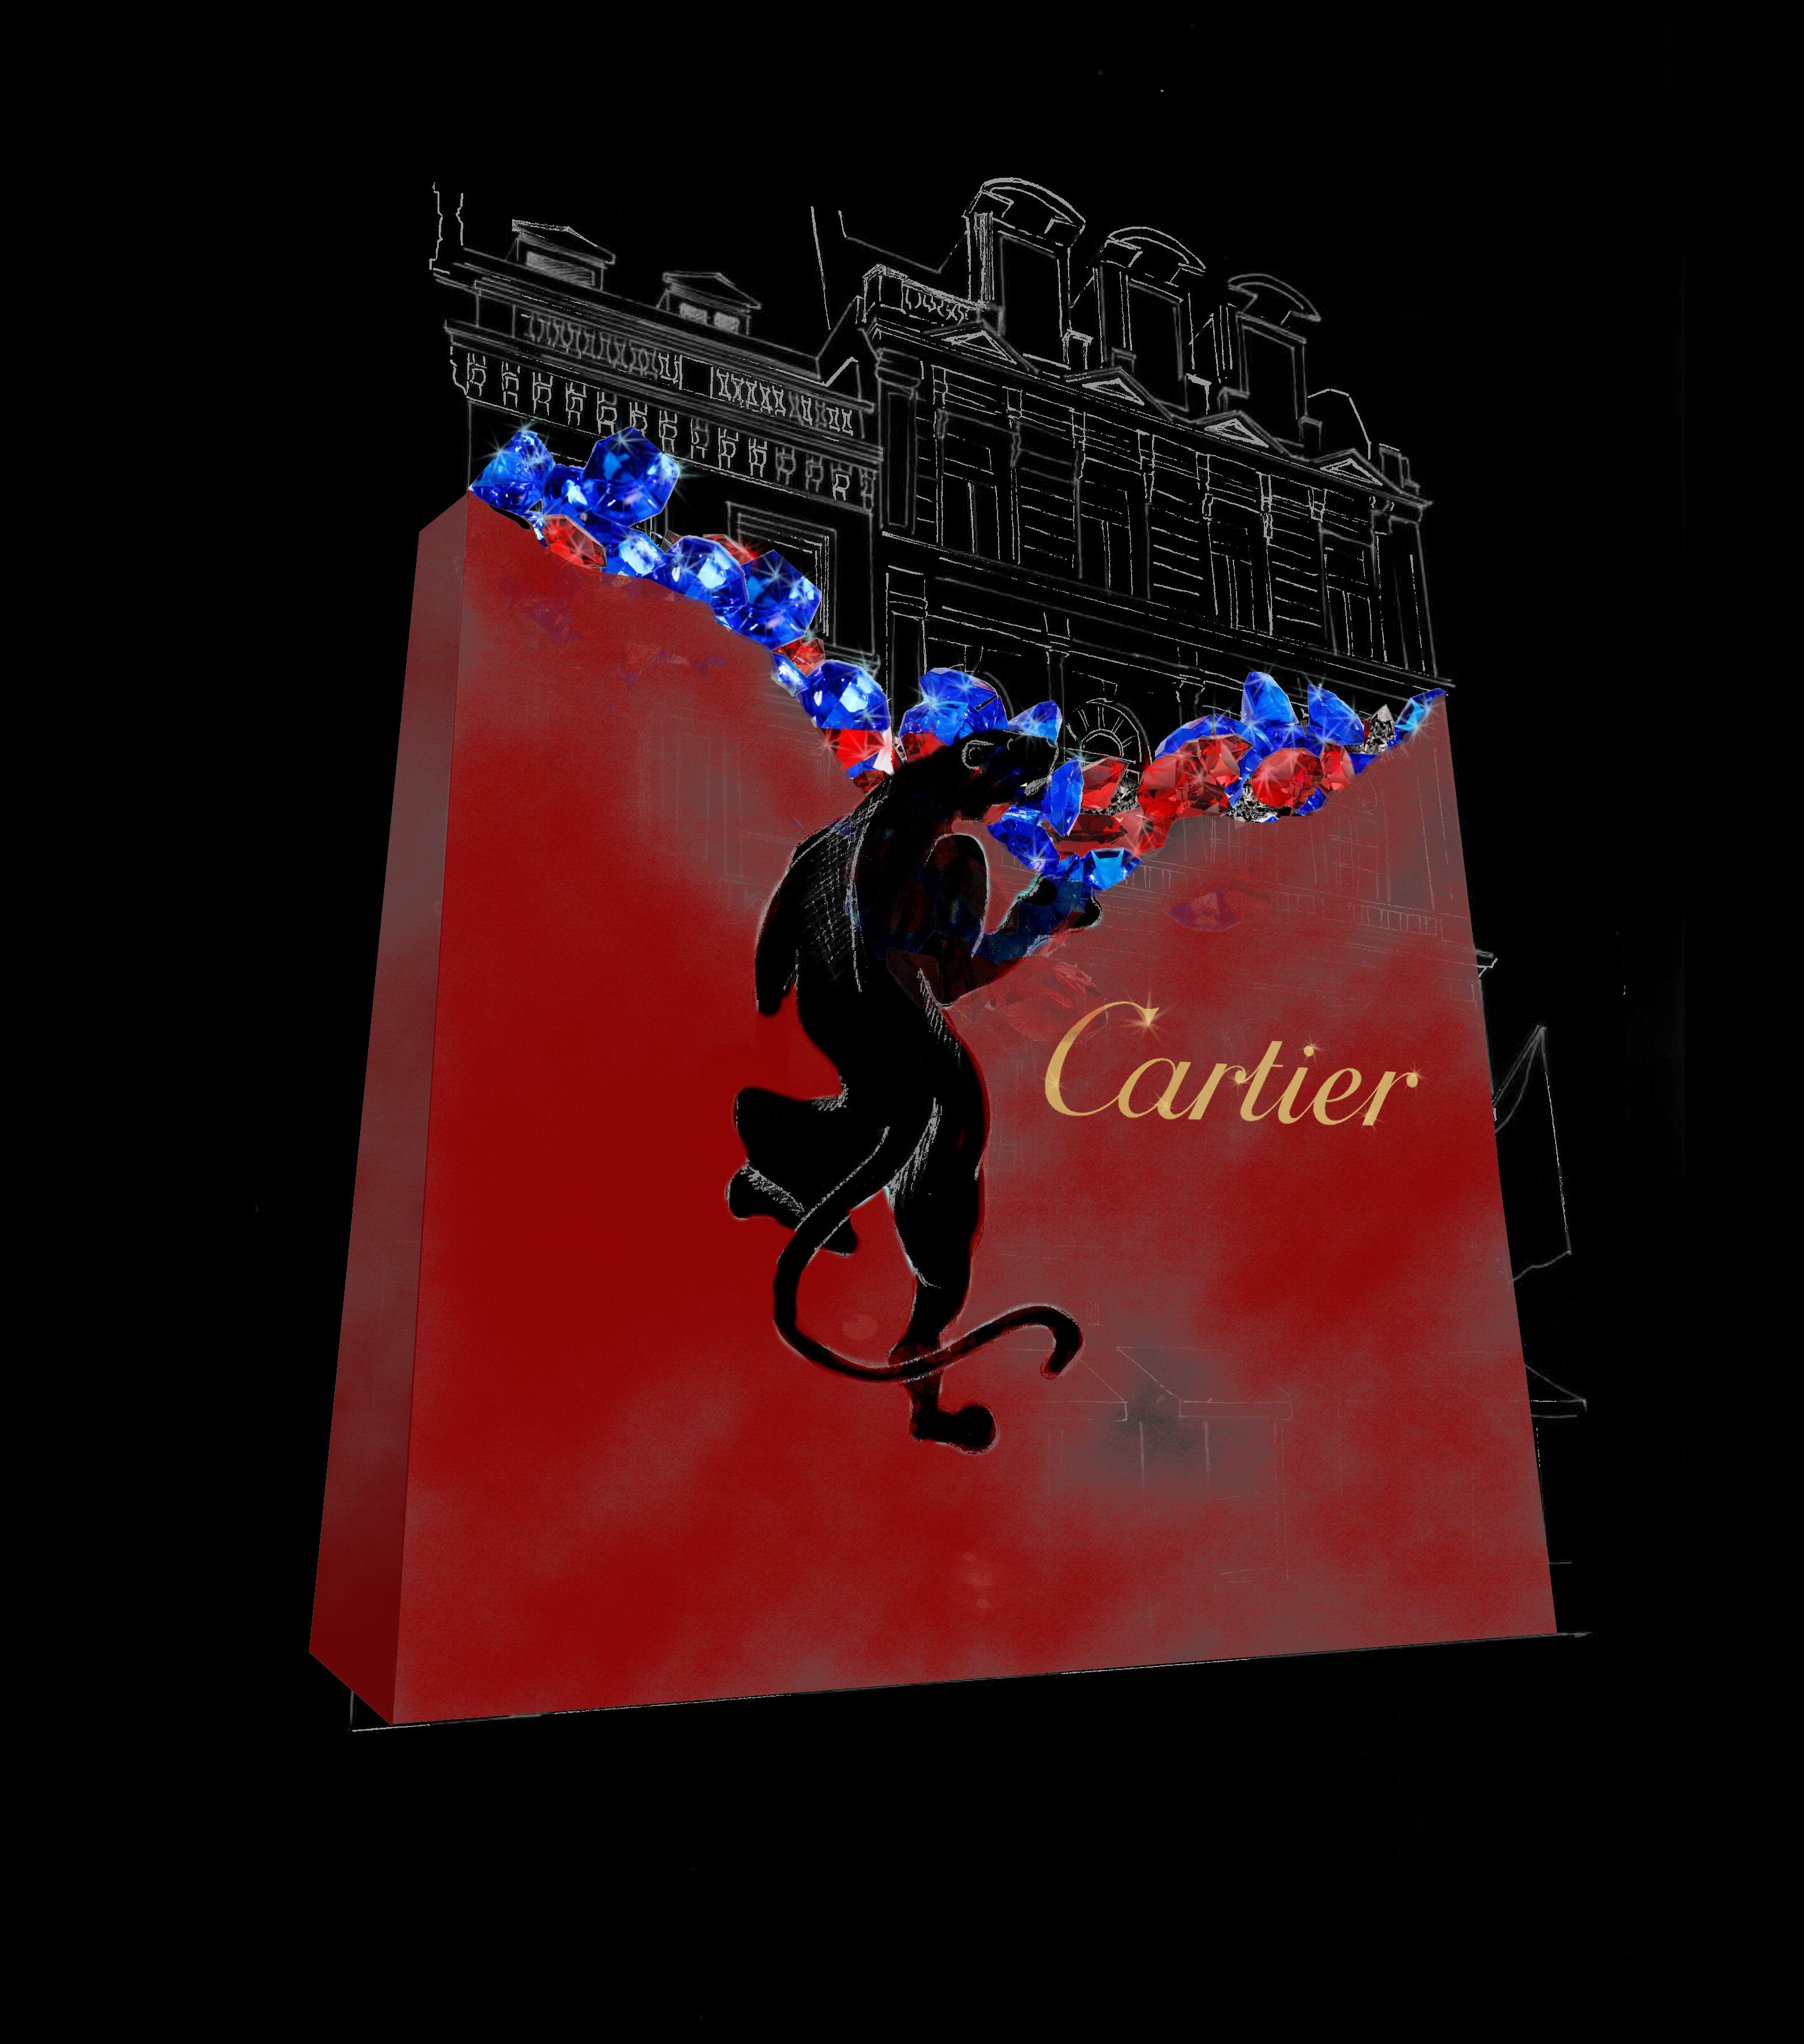 Cartier store front concept 1 OBS